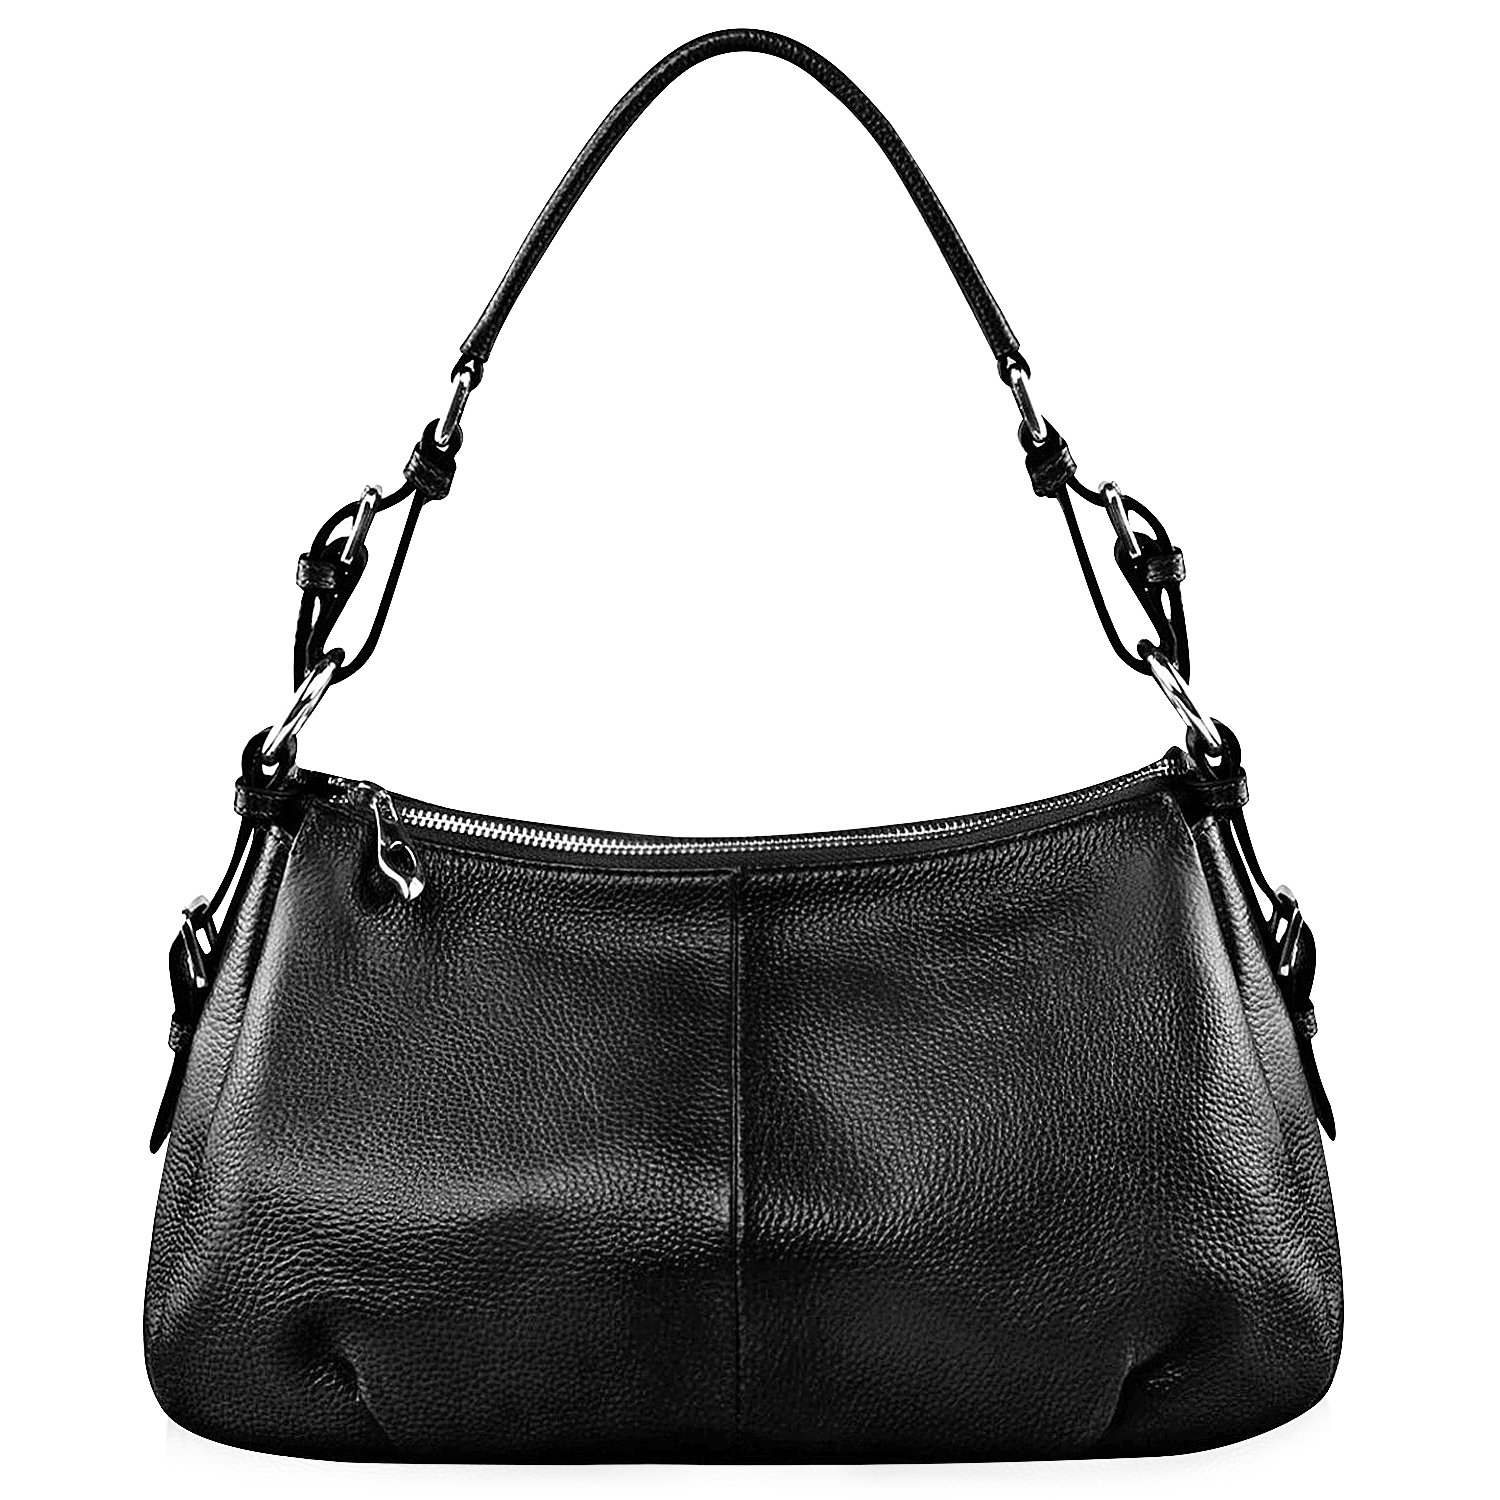 7b1e42154f1 S-ZONE Womens Hobo Genuine Leather Shoulder Bag Top-handle Handbag Ladies  Purses